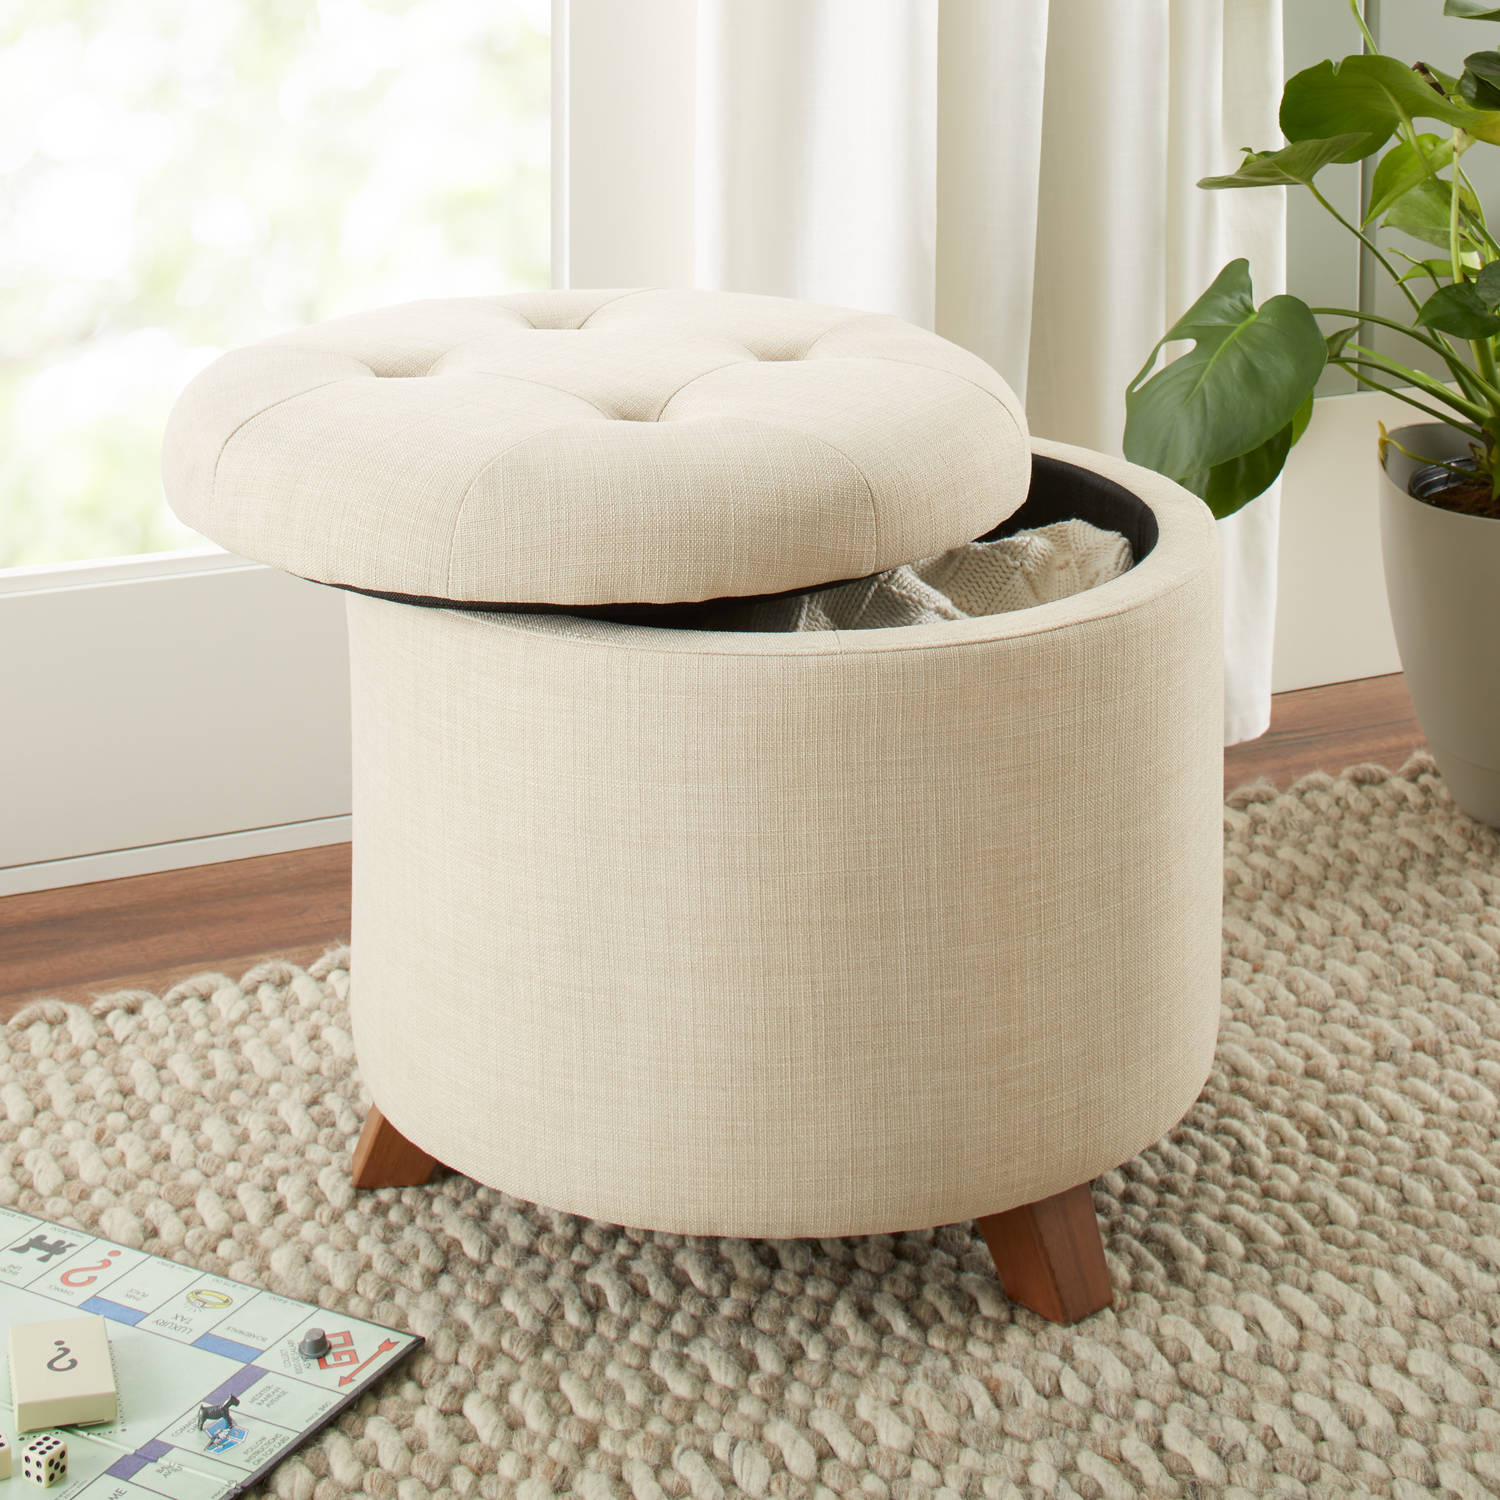 Better Homes & Gardens Colette Tufted Storage Ottoman, Multiple Colors by BDDMI